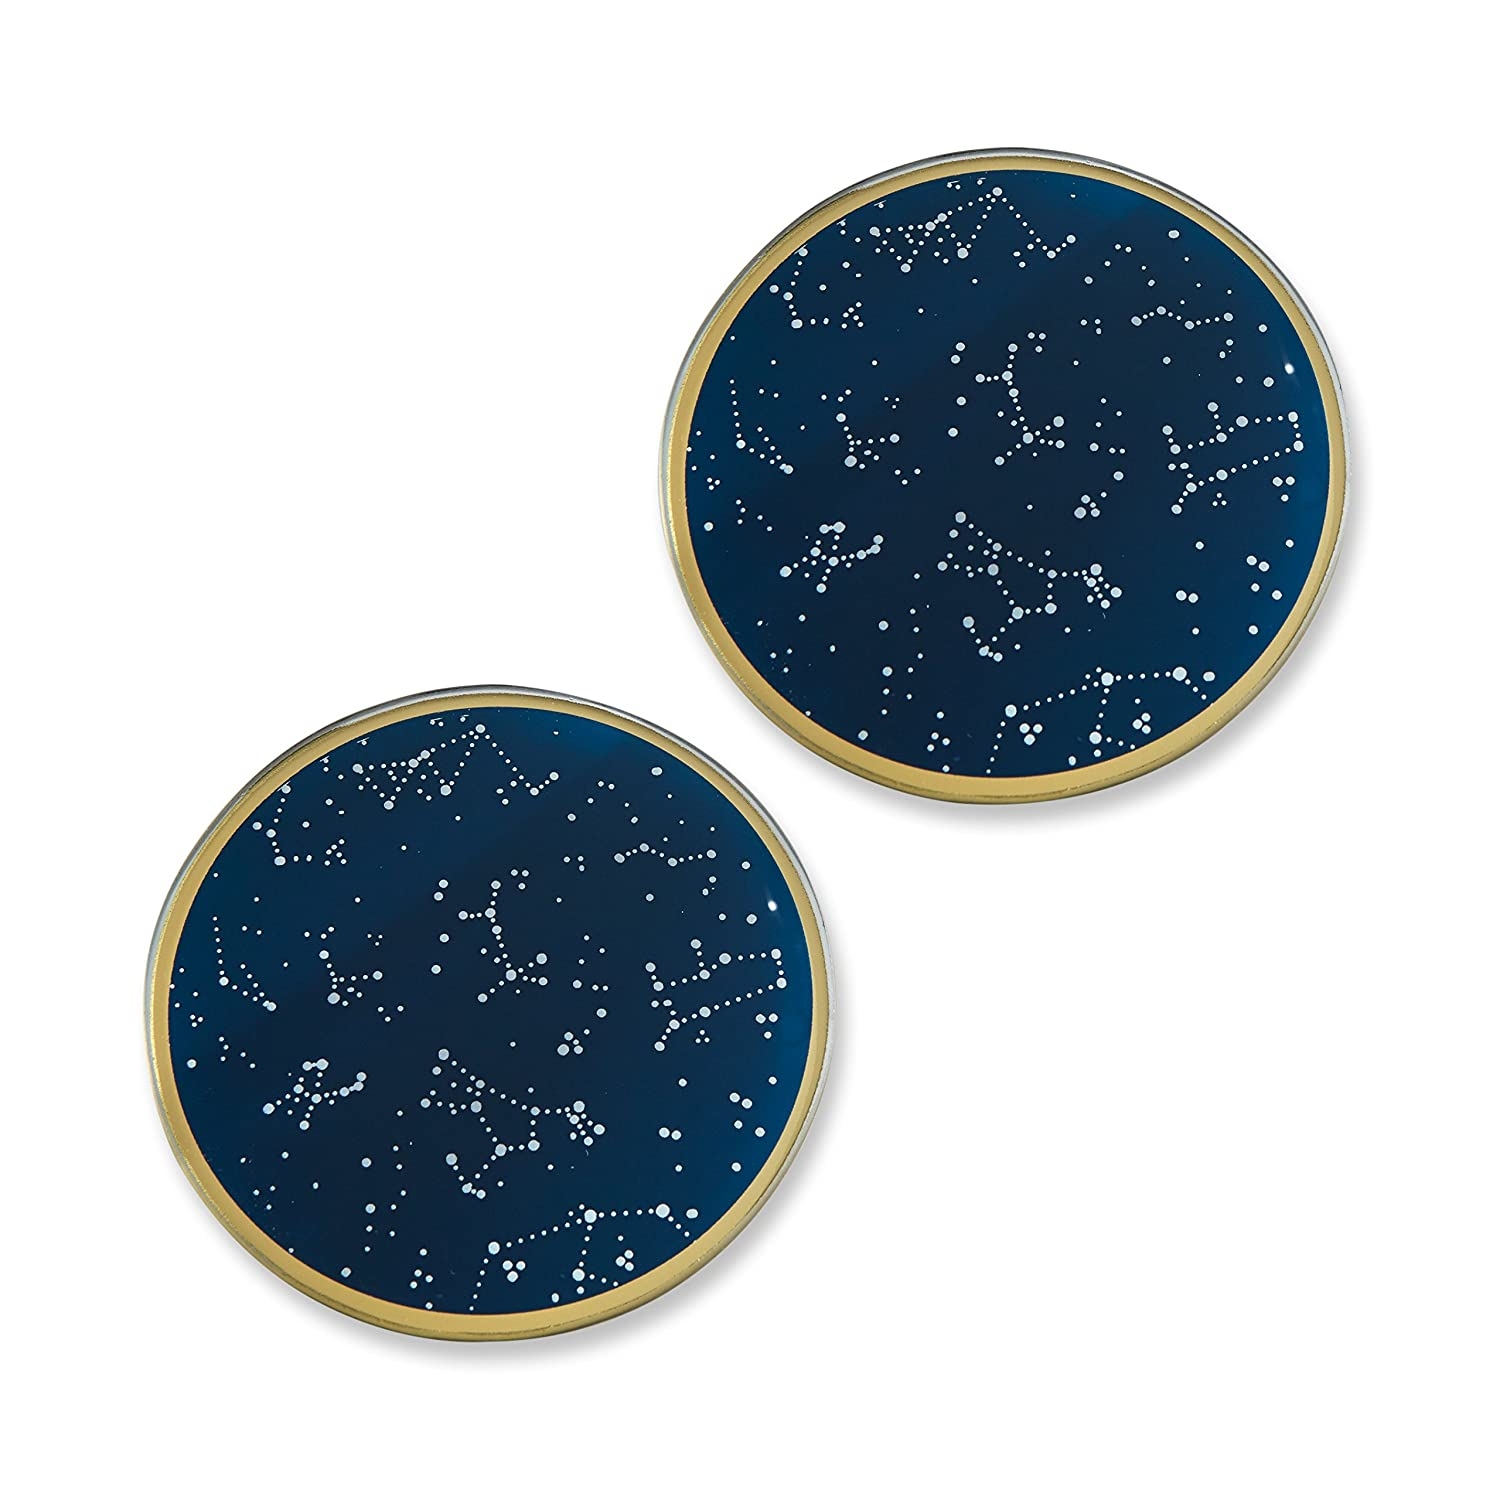 Kate Aspen Under the Stars Glass Coaster Set, Wedding/Party Decorations, Party Favor Gift, Navy/Gold/White 27114NA